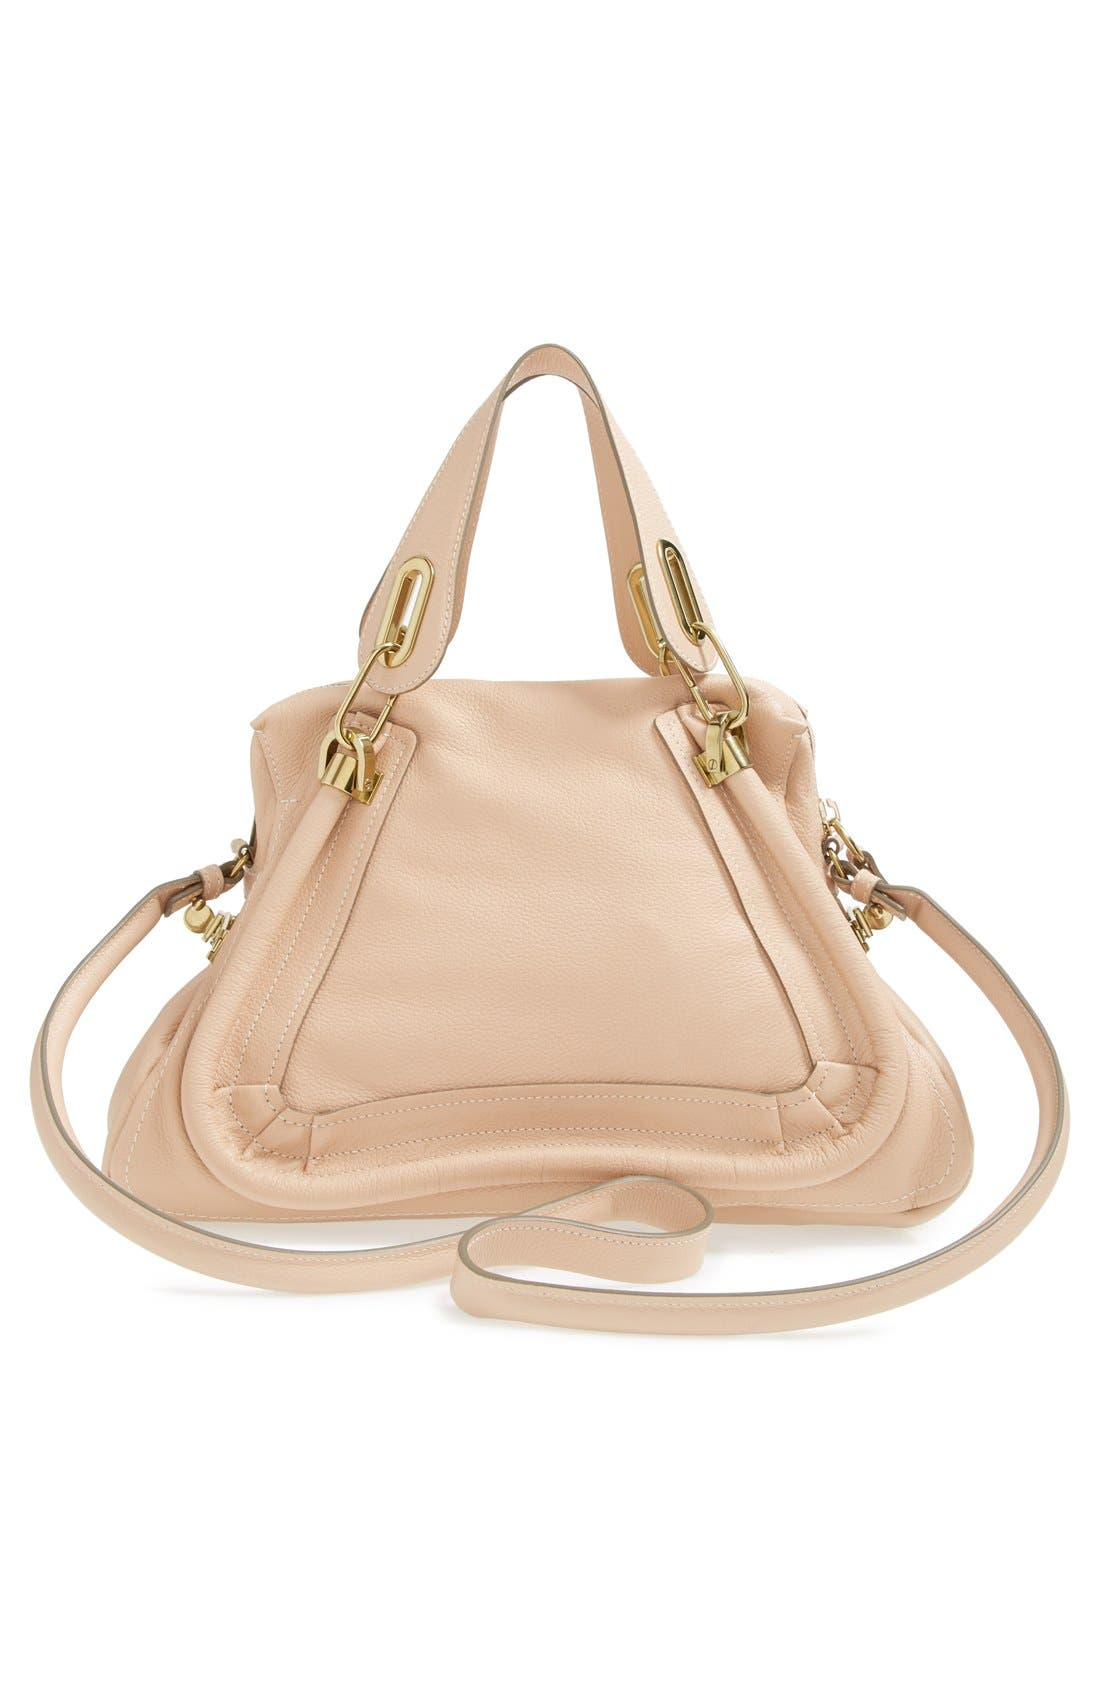 Alternate Image 2  - Chloé 'Paraty - Medium' Leather Satchel